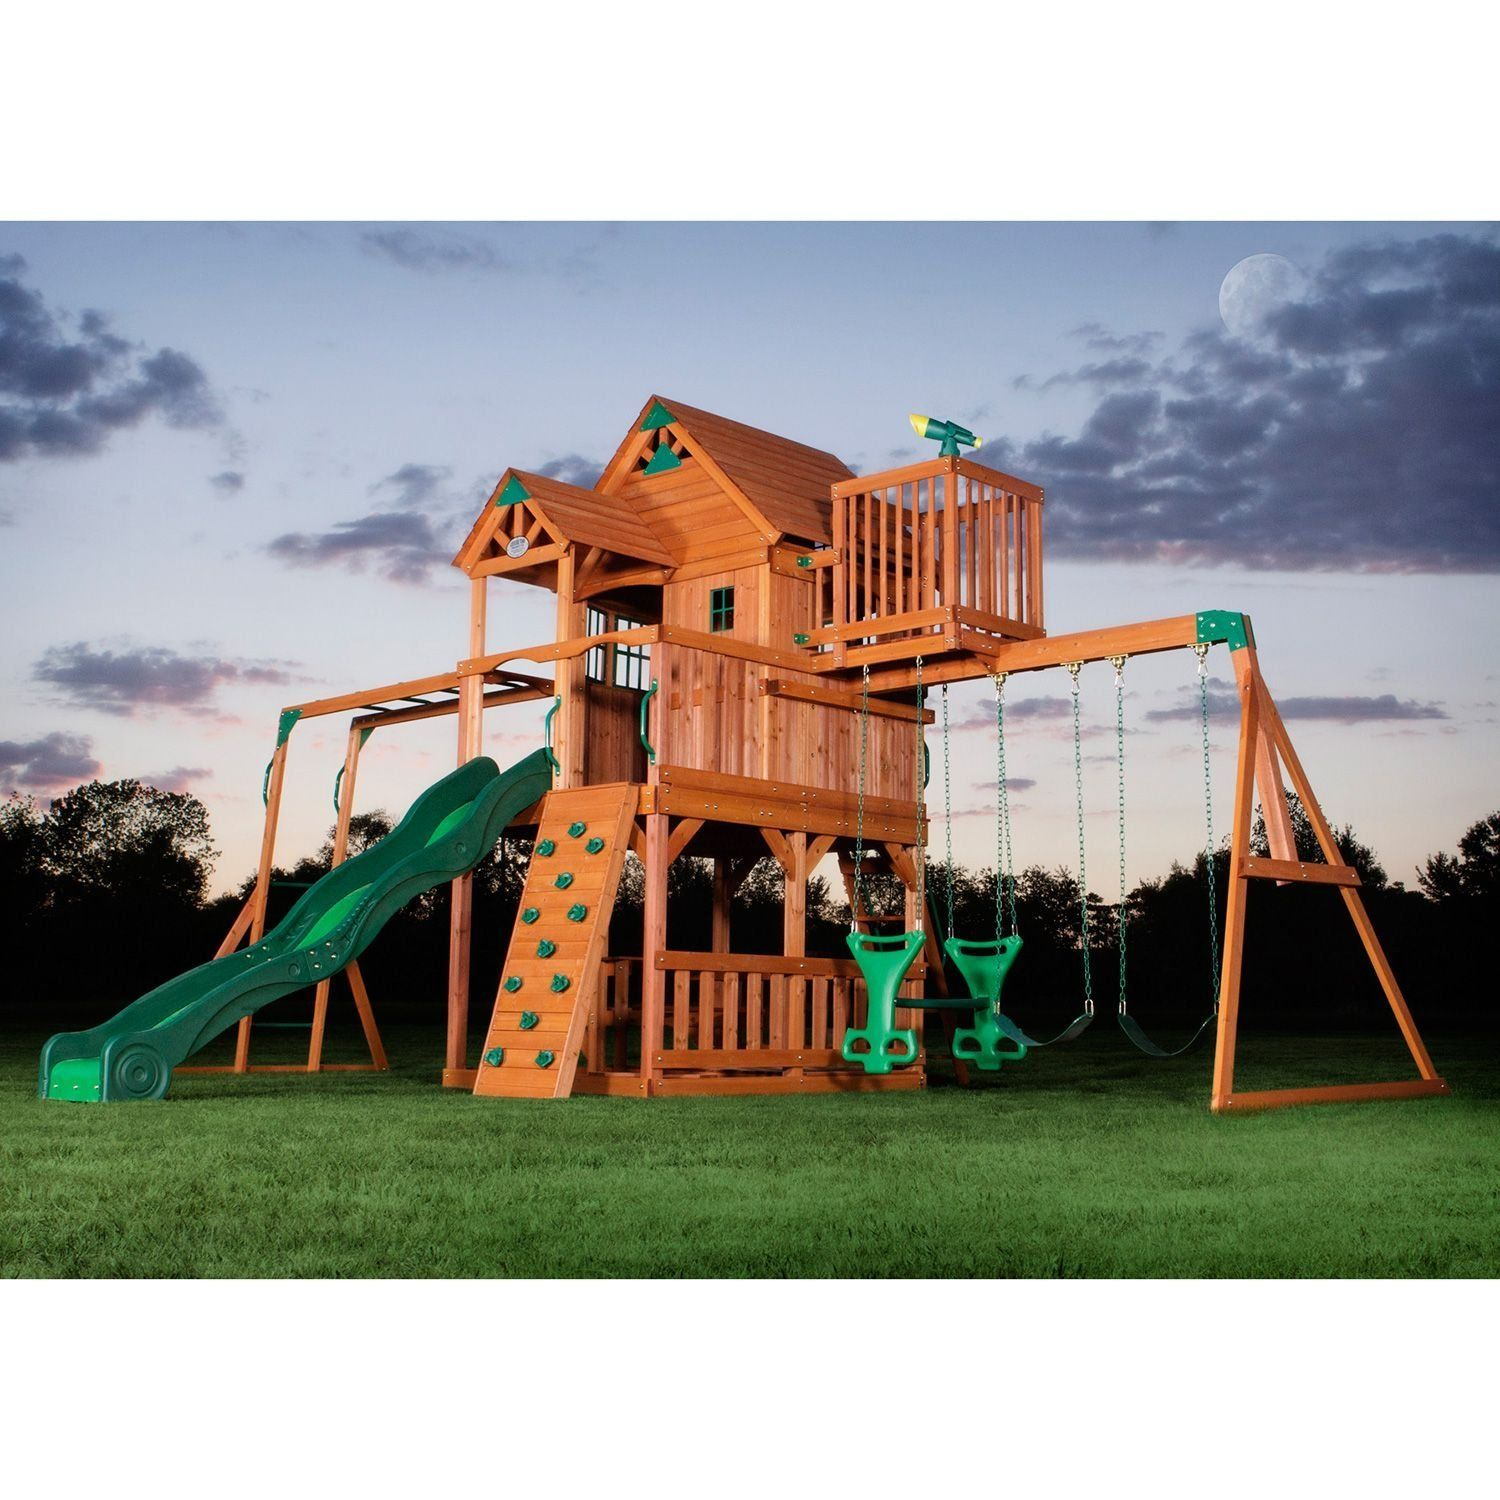 Charming Amazon.com : Skyfort All Cedar Play Set : Playground Play And Swing Sets